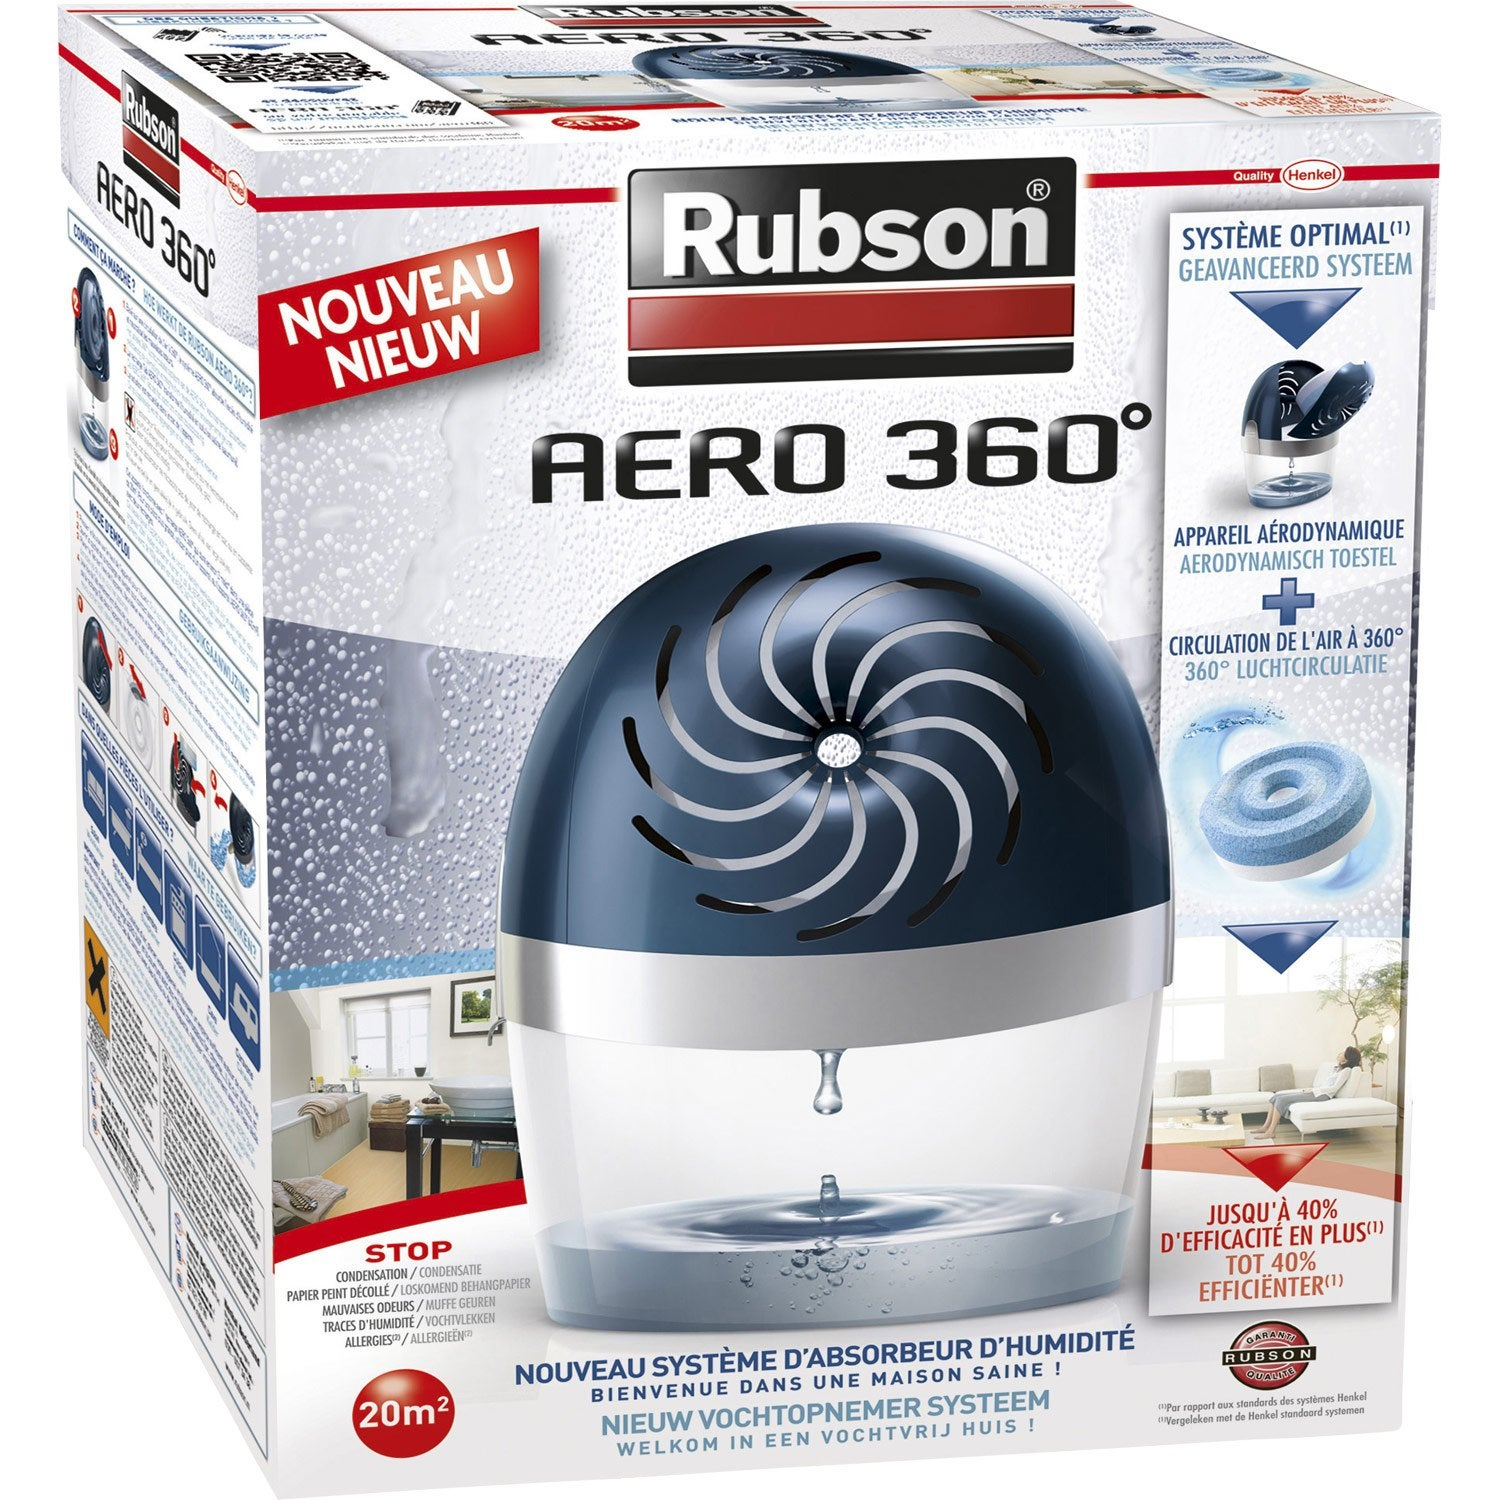 absorbeur d 39 humidit une recharge a ro 360 rubson 20 m leroy merlin. Black Bedroom Furniture Sets. Home Design Ideas